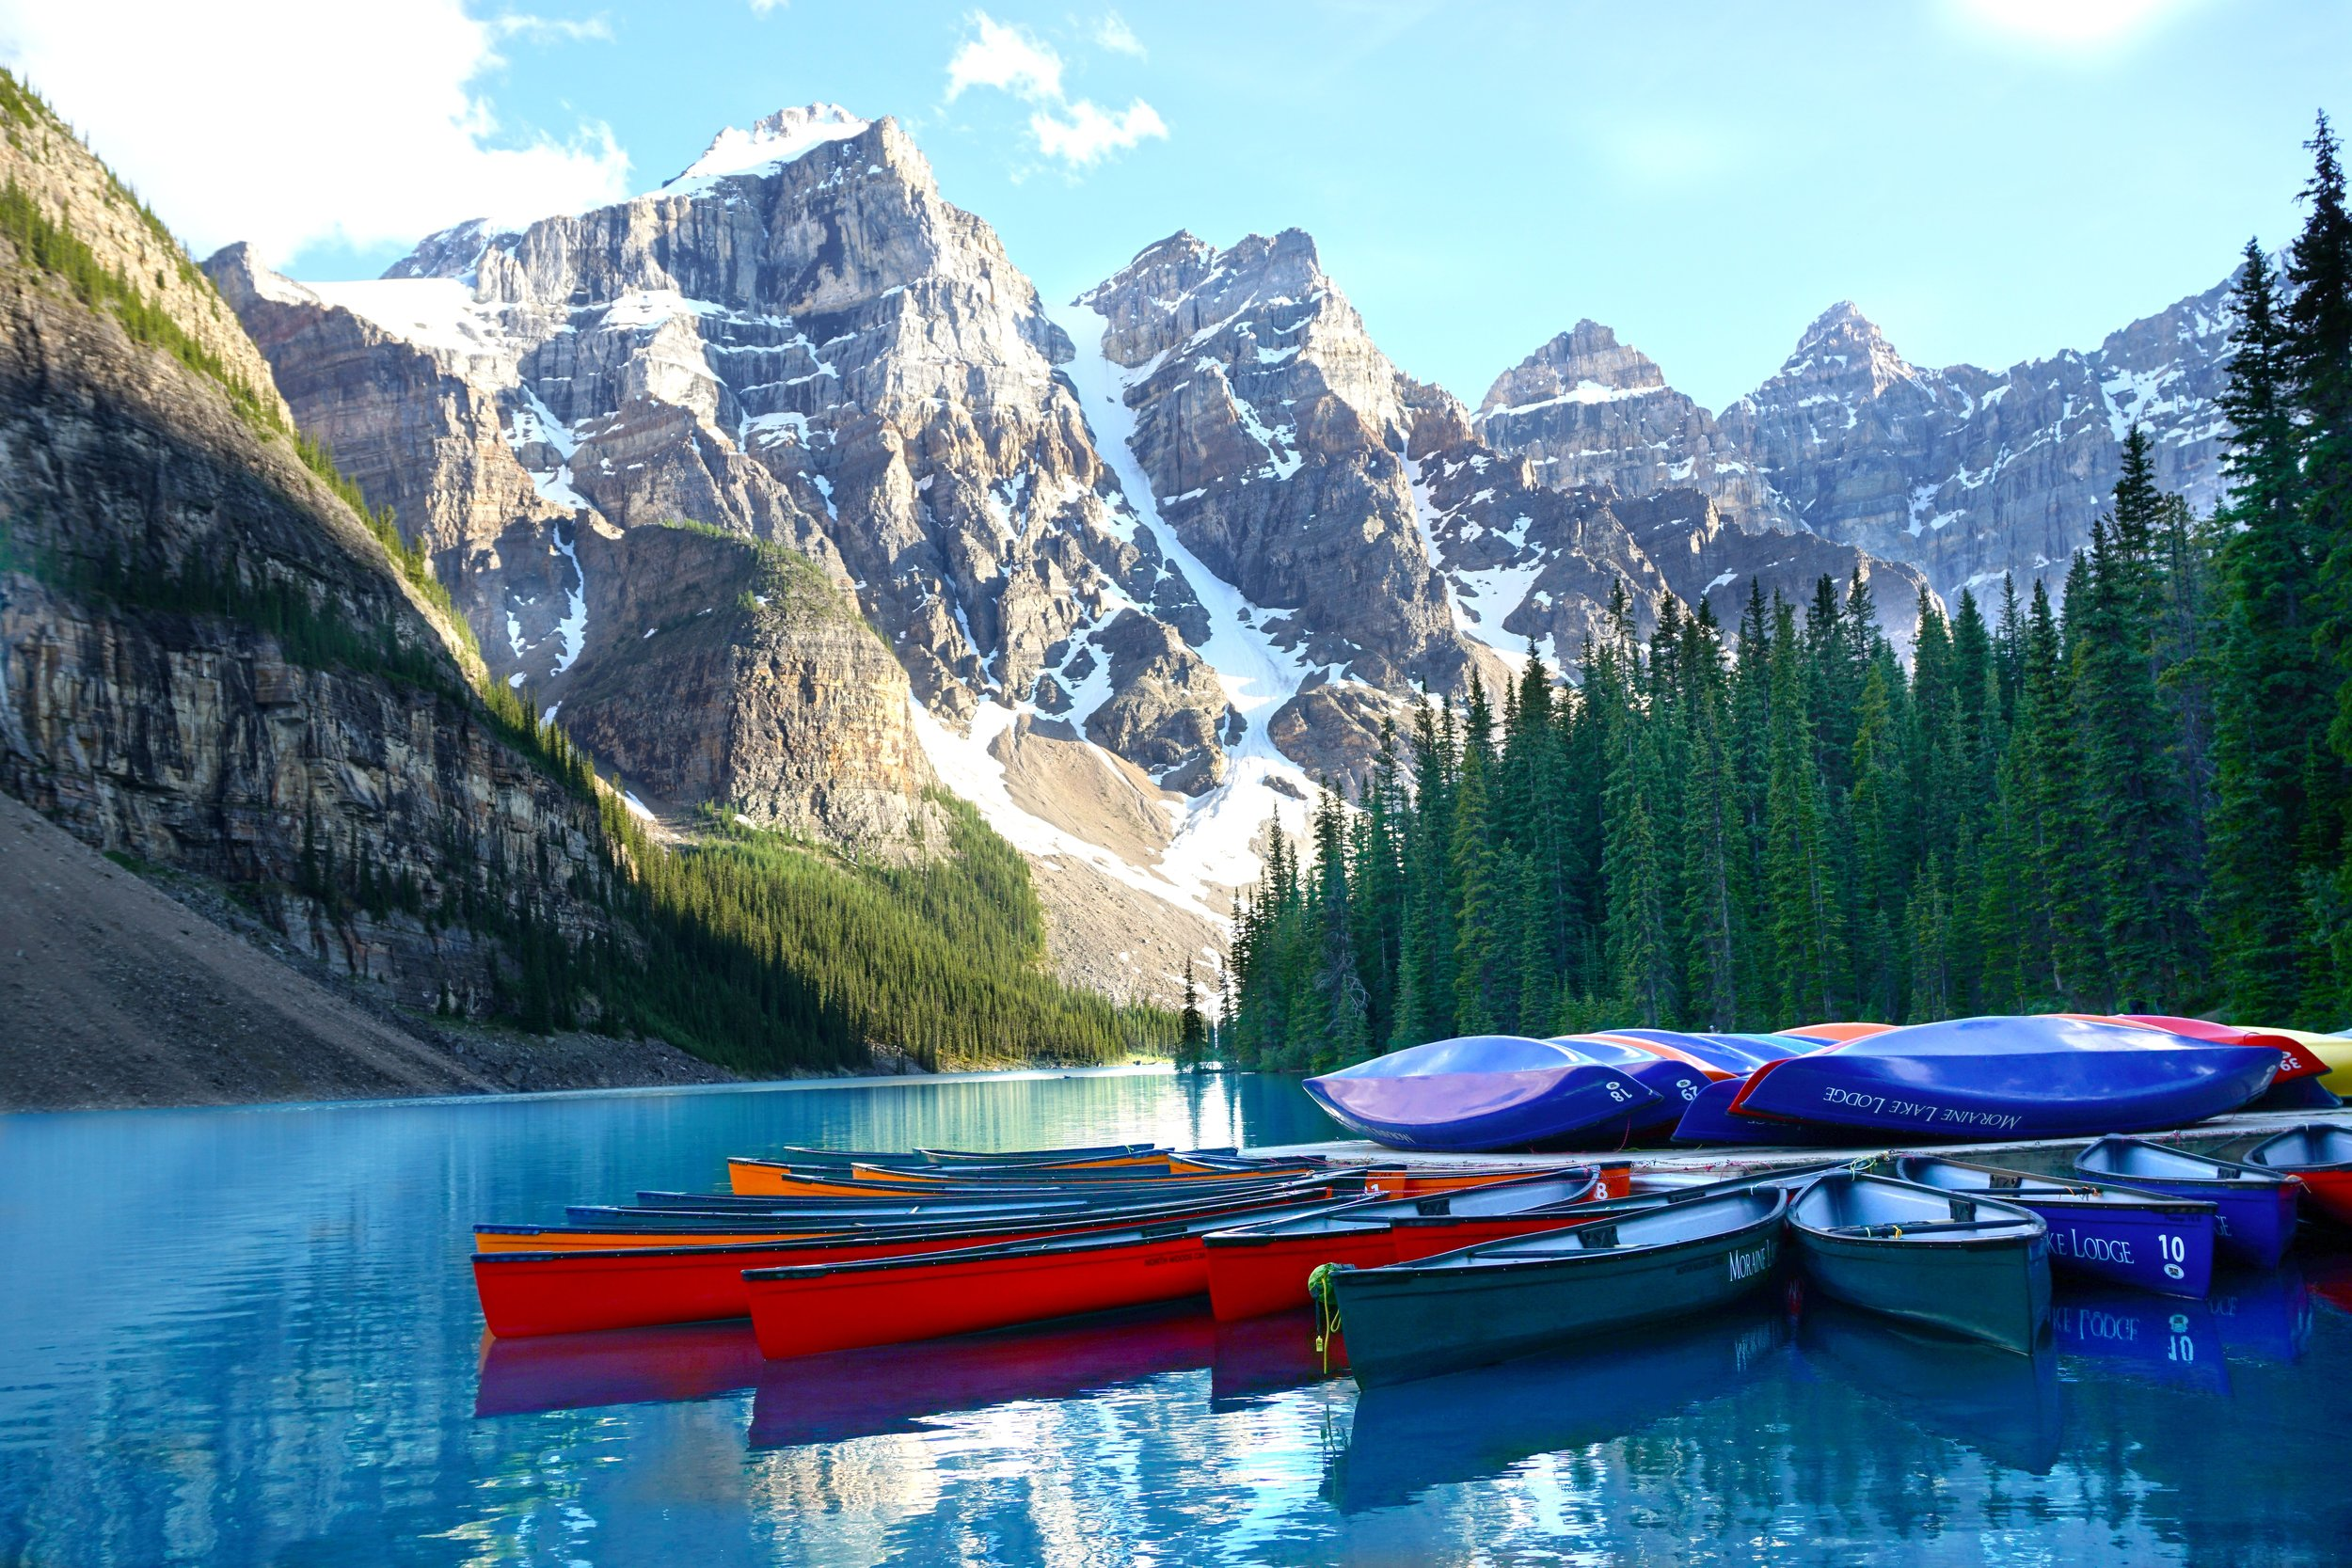 If you want to experience the best of Canadian nature head to Banff.